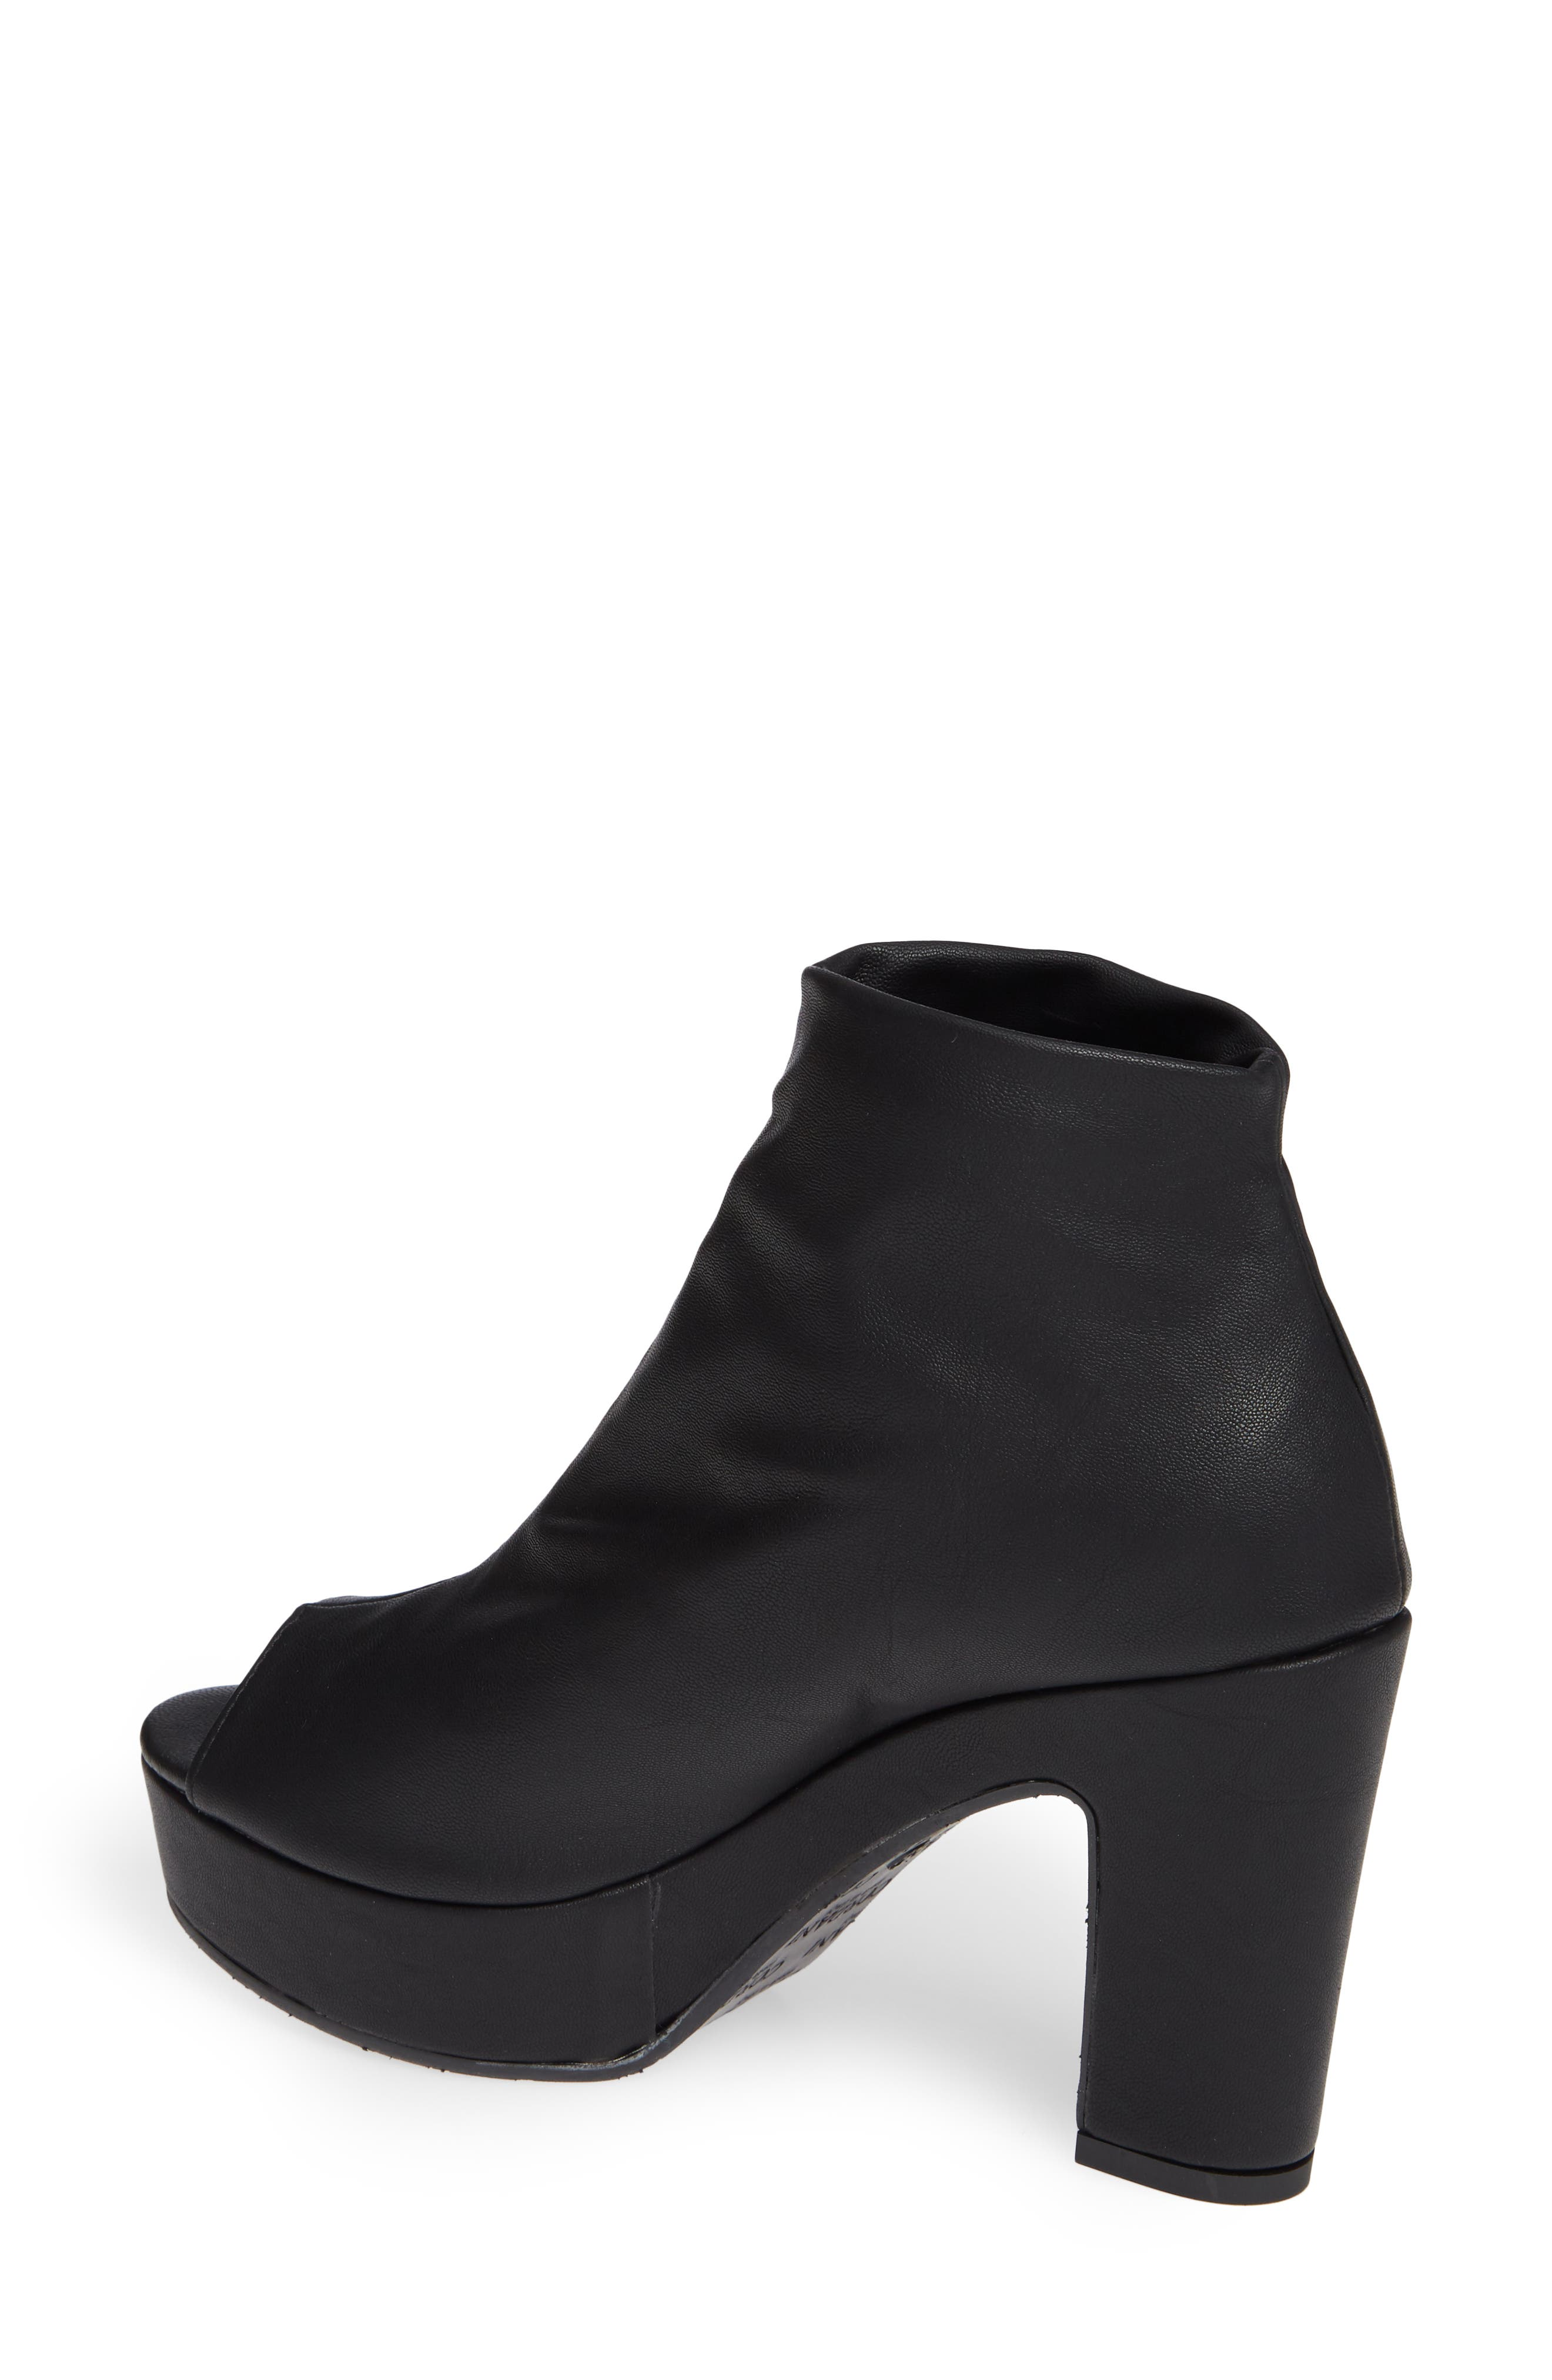 Tyra Peep Toe Platform Bootie,                             Alternate thumbnail 2, color,                             BLACK FABRIC